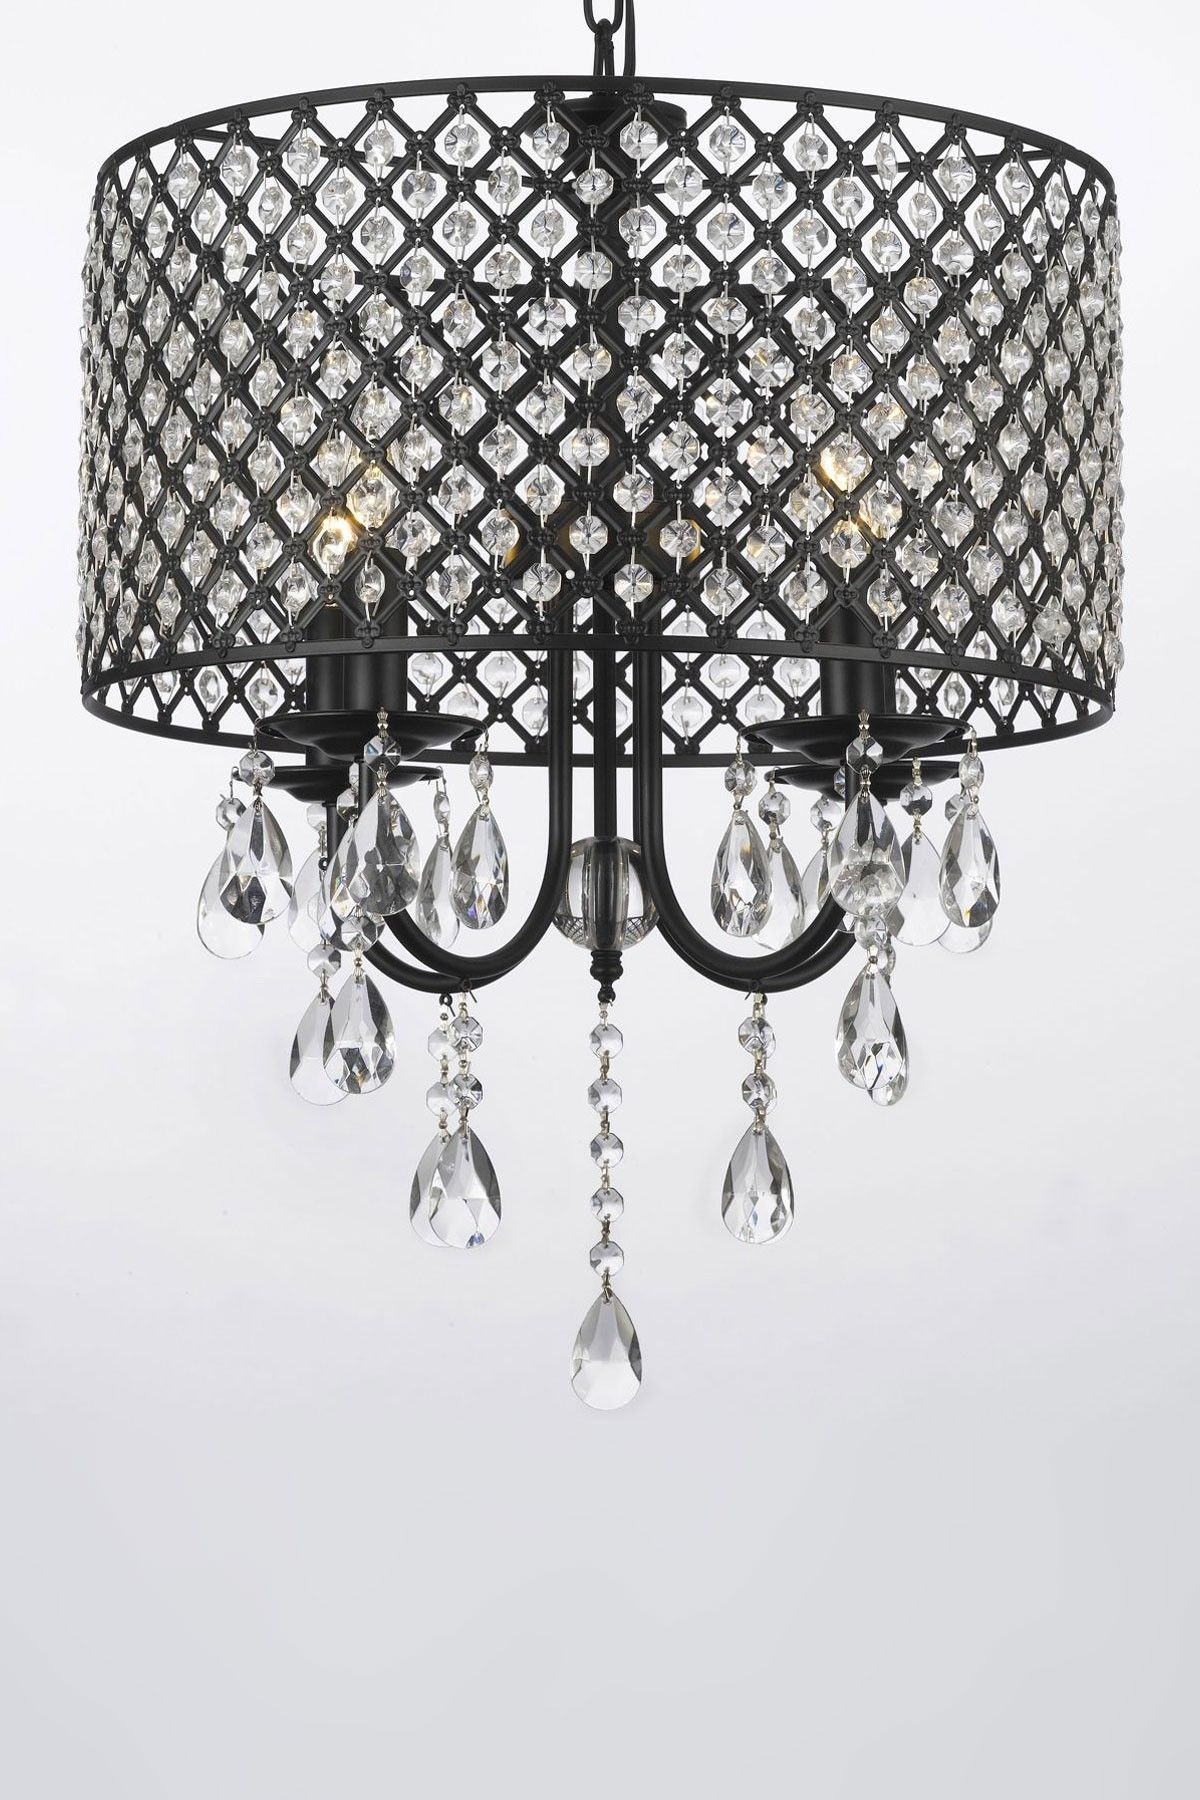 Four Light Wrought Iron Crystal Chandelier